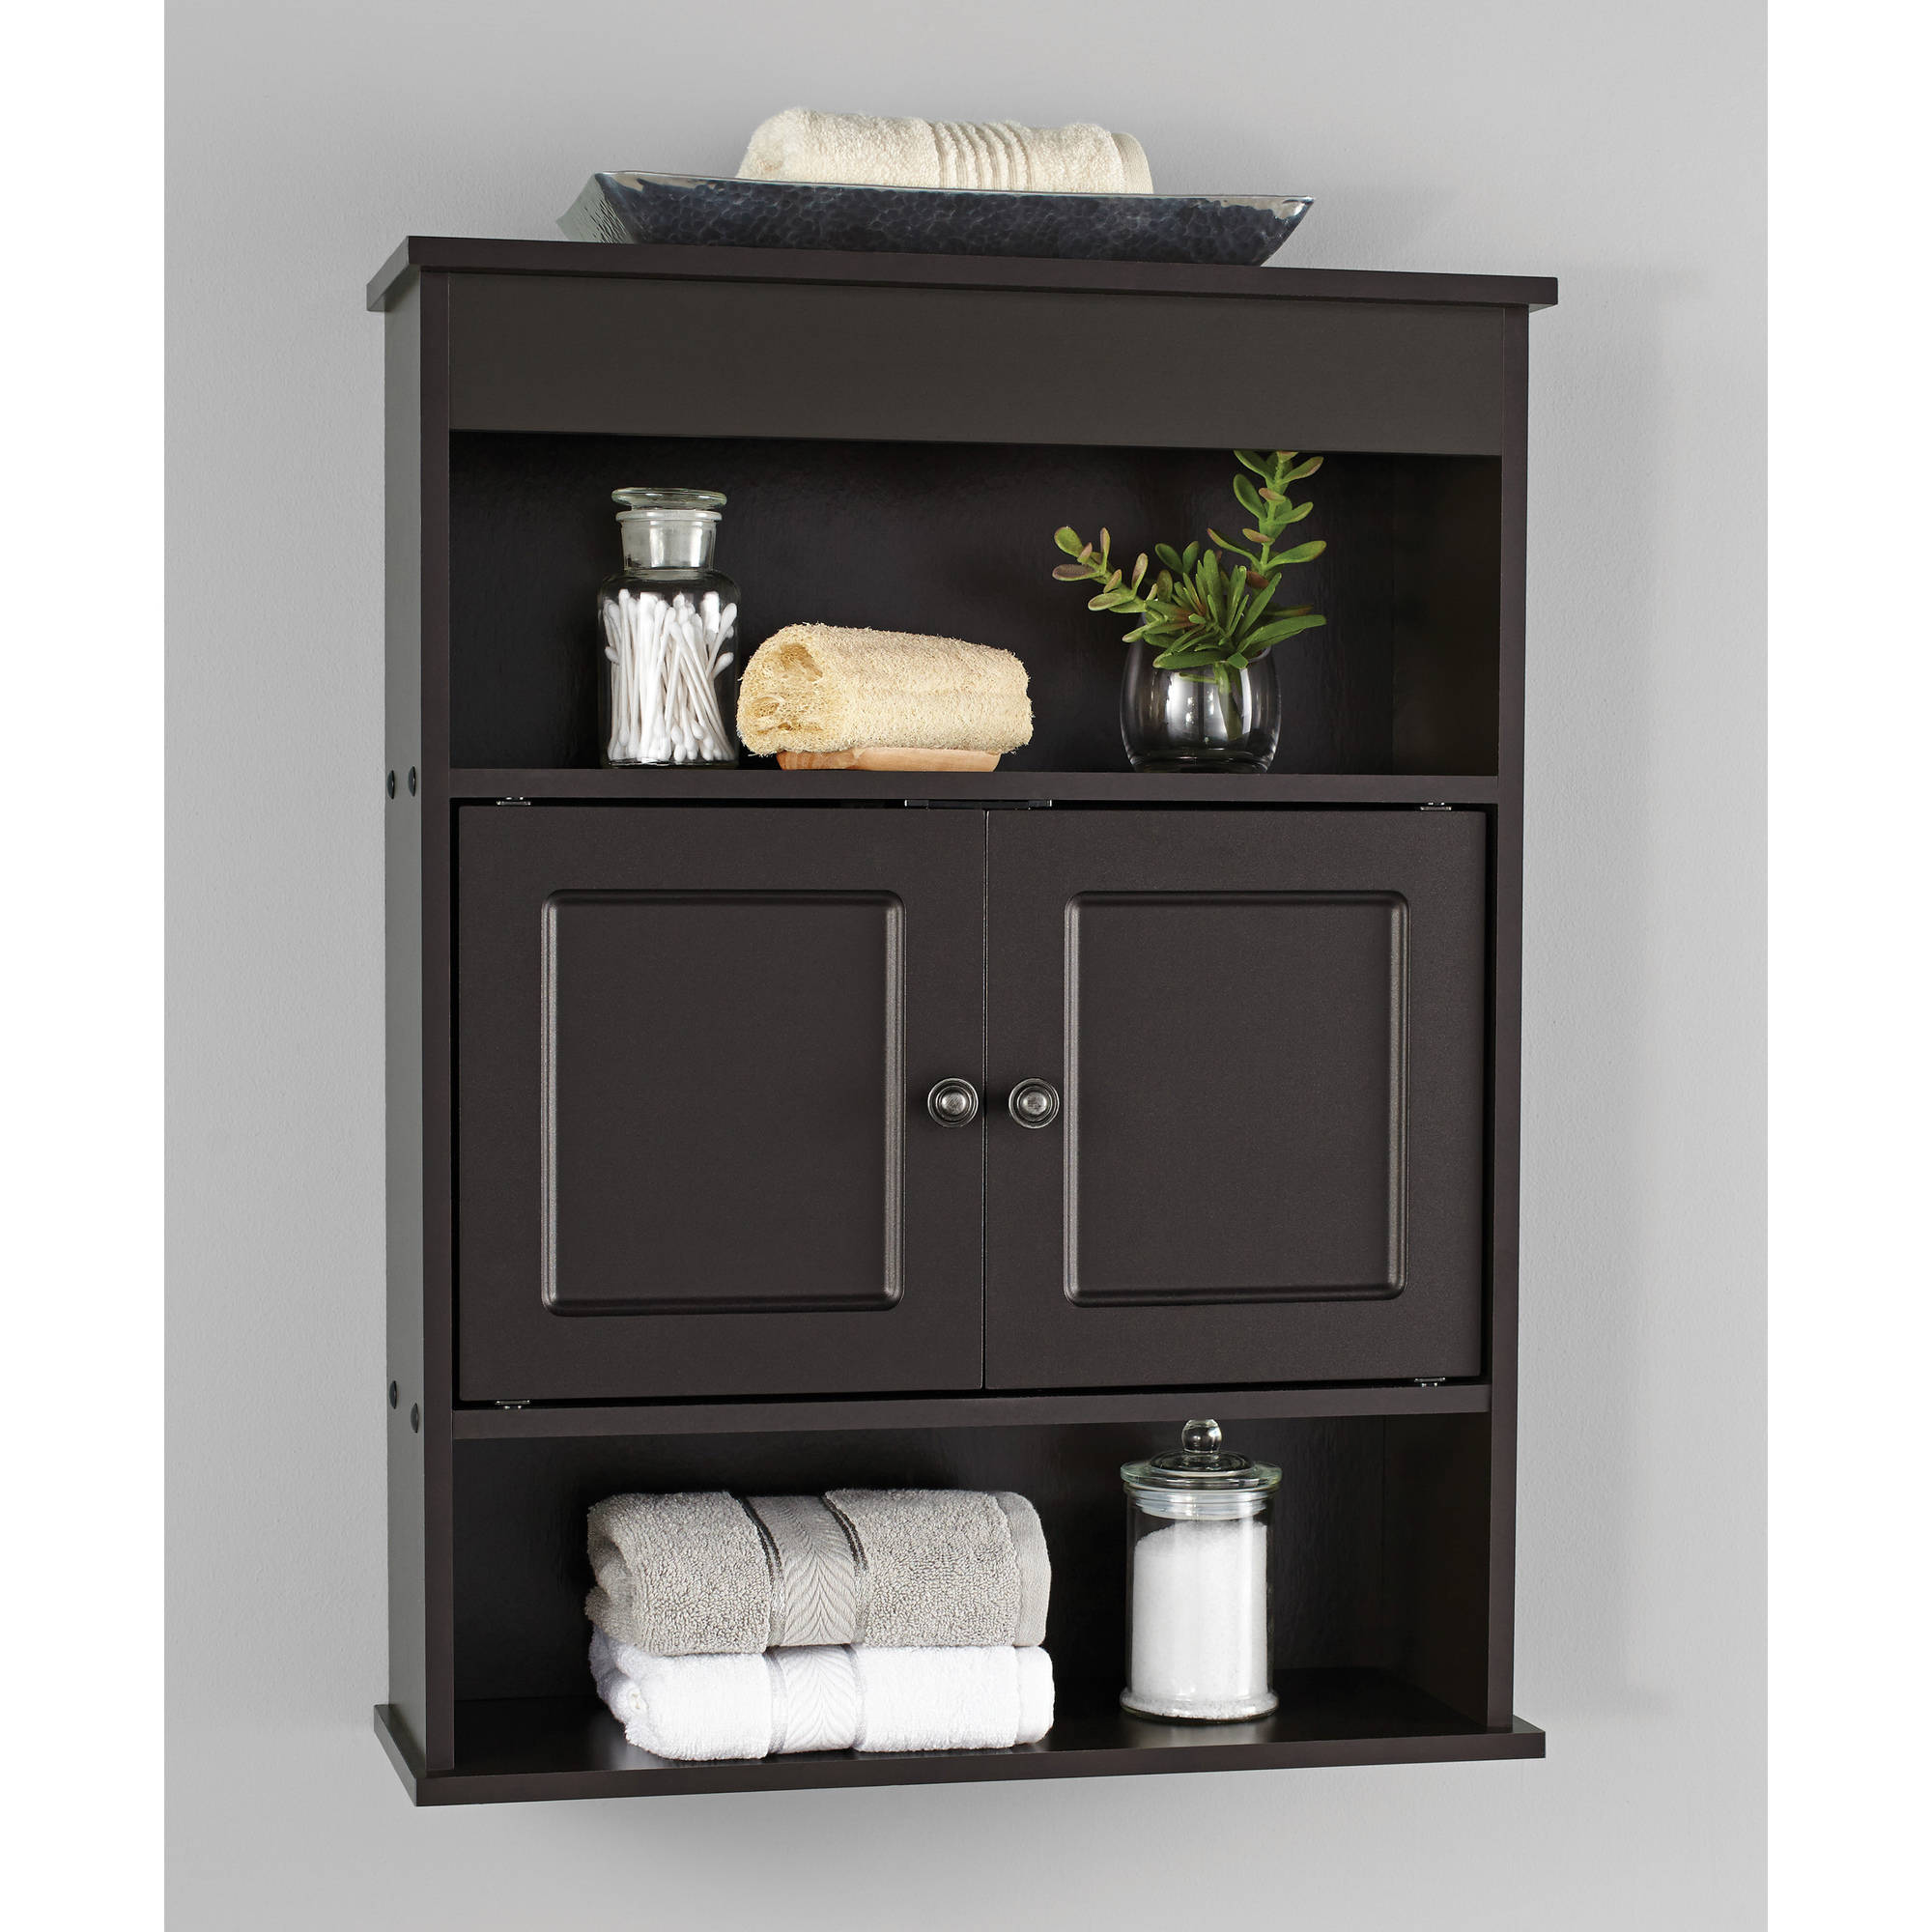 Chapter Bathroom Wall Cabinet, Espresso